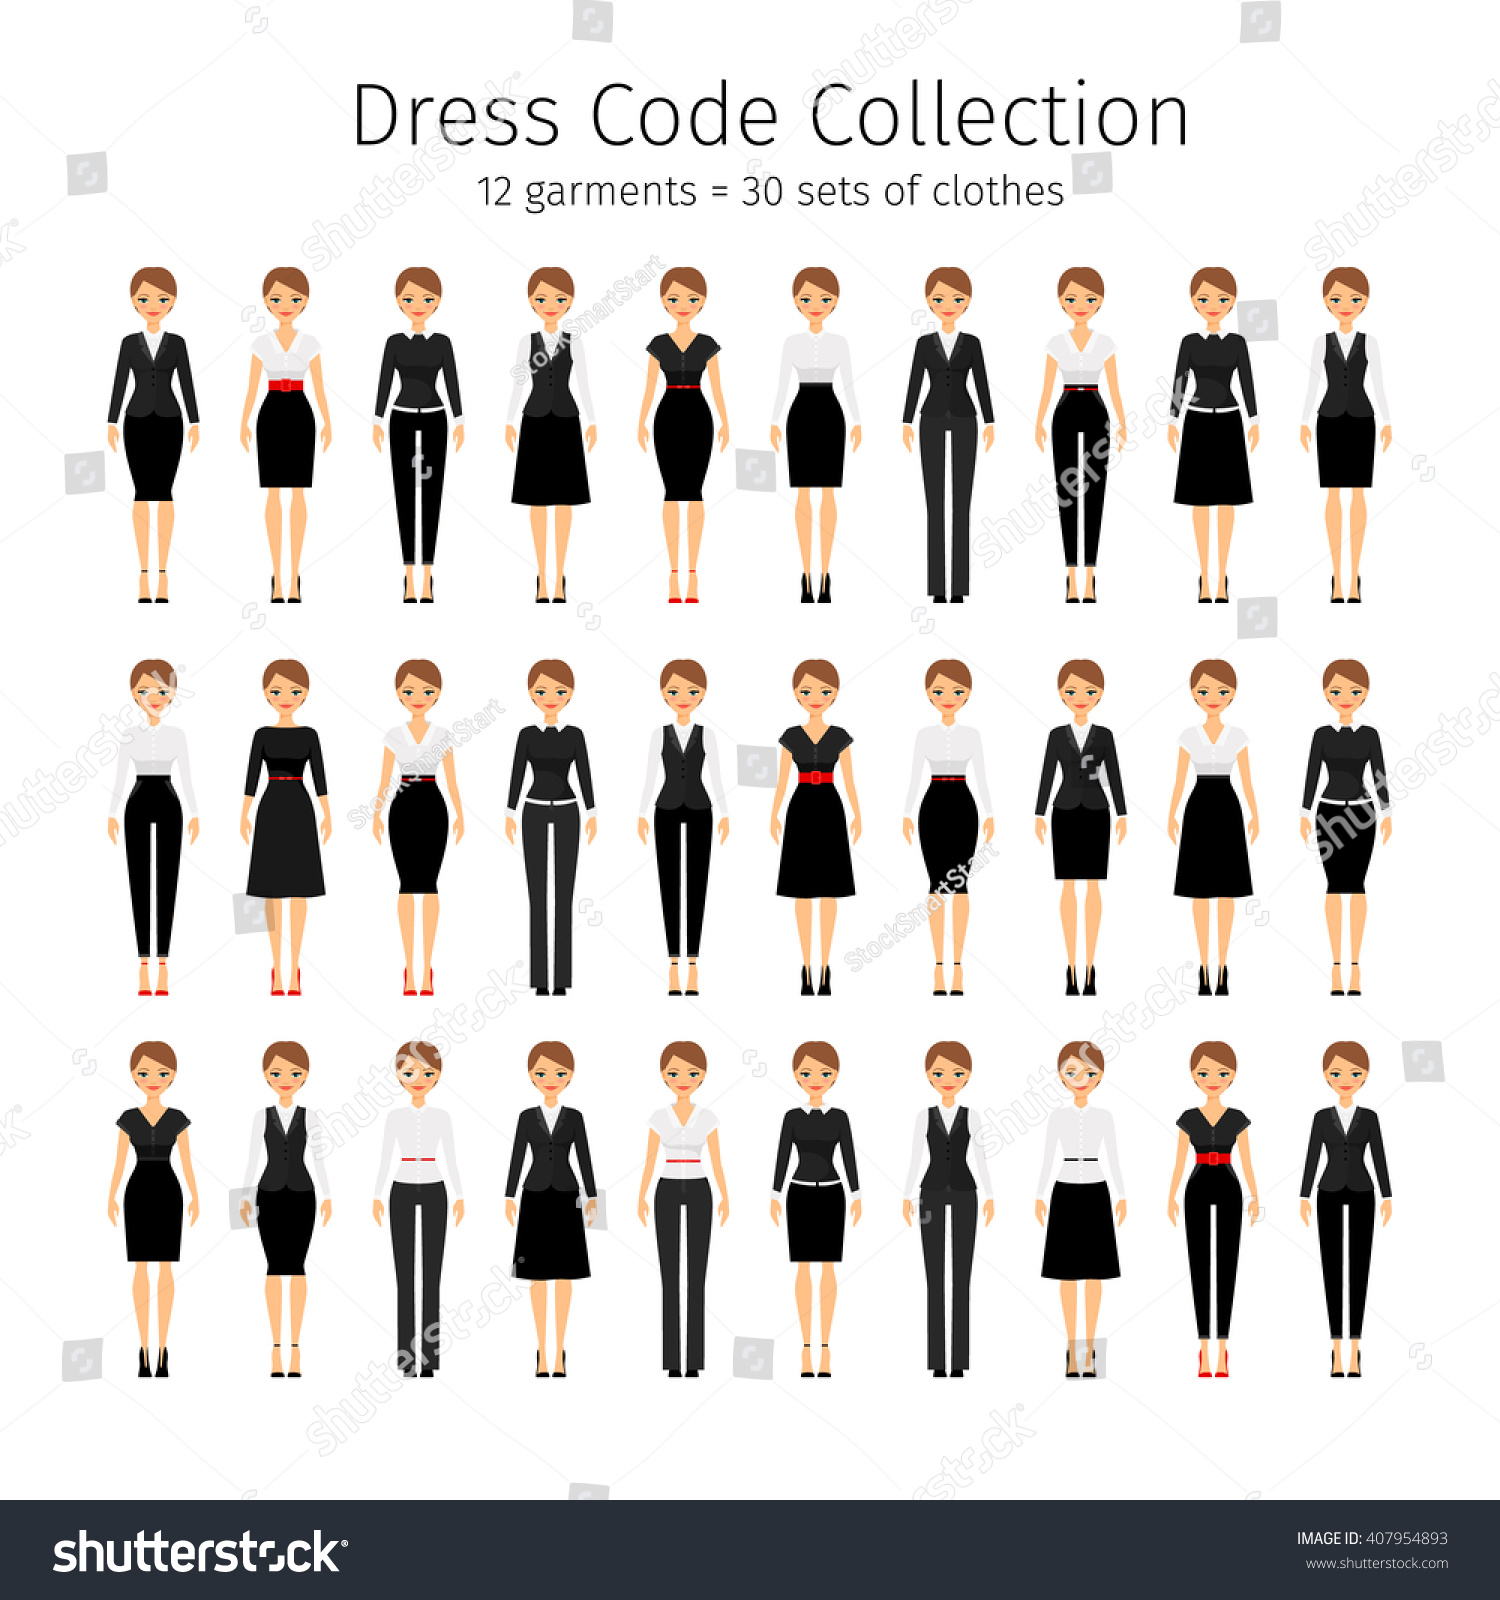 how to ask dress code for event